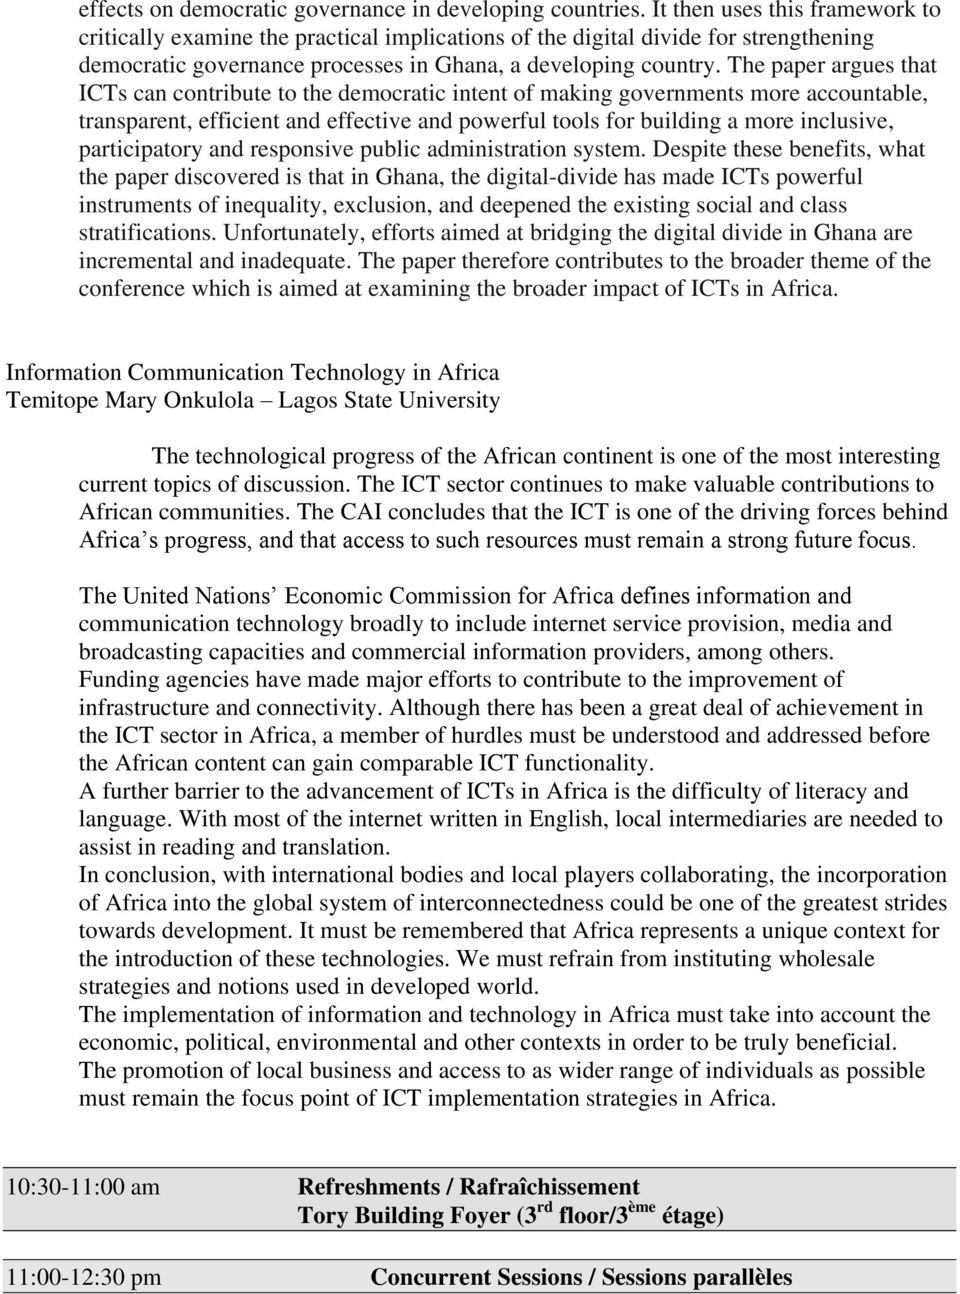 The paper argues that ICTs can contribute to the democratic intent of making governments more accountable, transparent, efficient and effective and powerful tools for building a more inclusive,